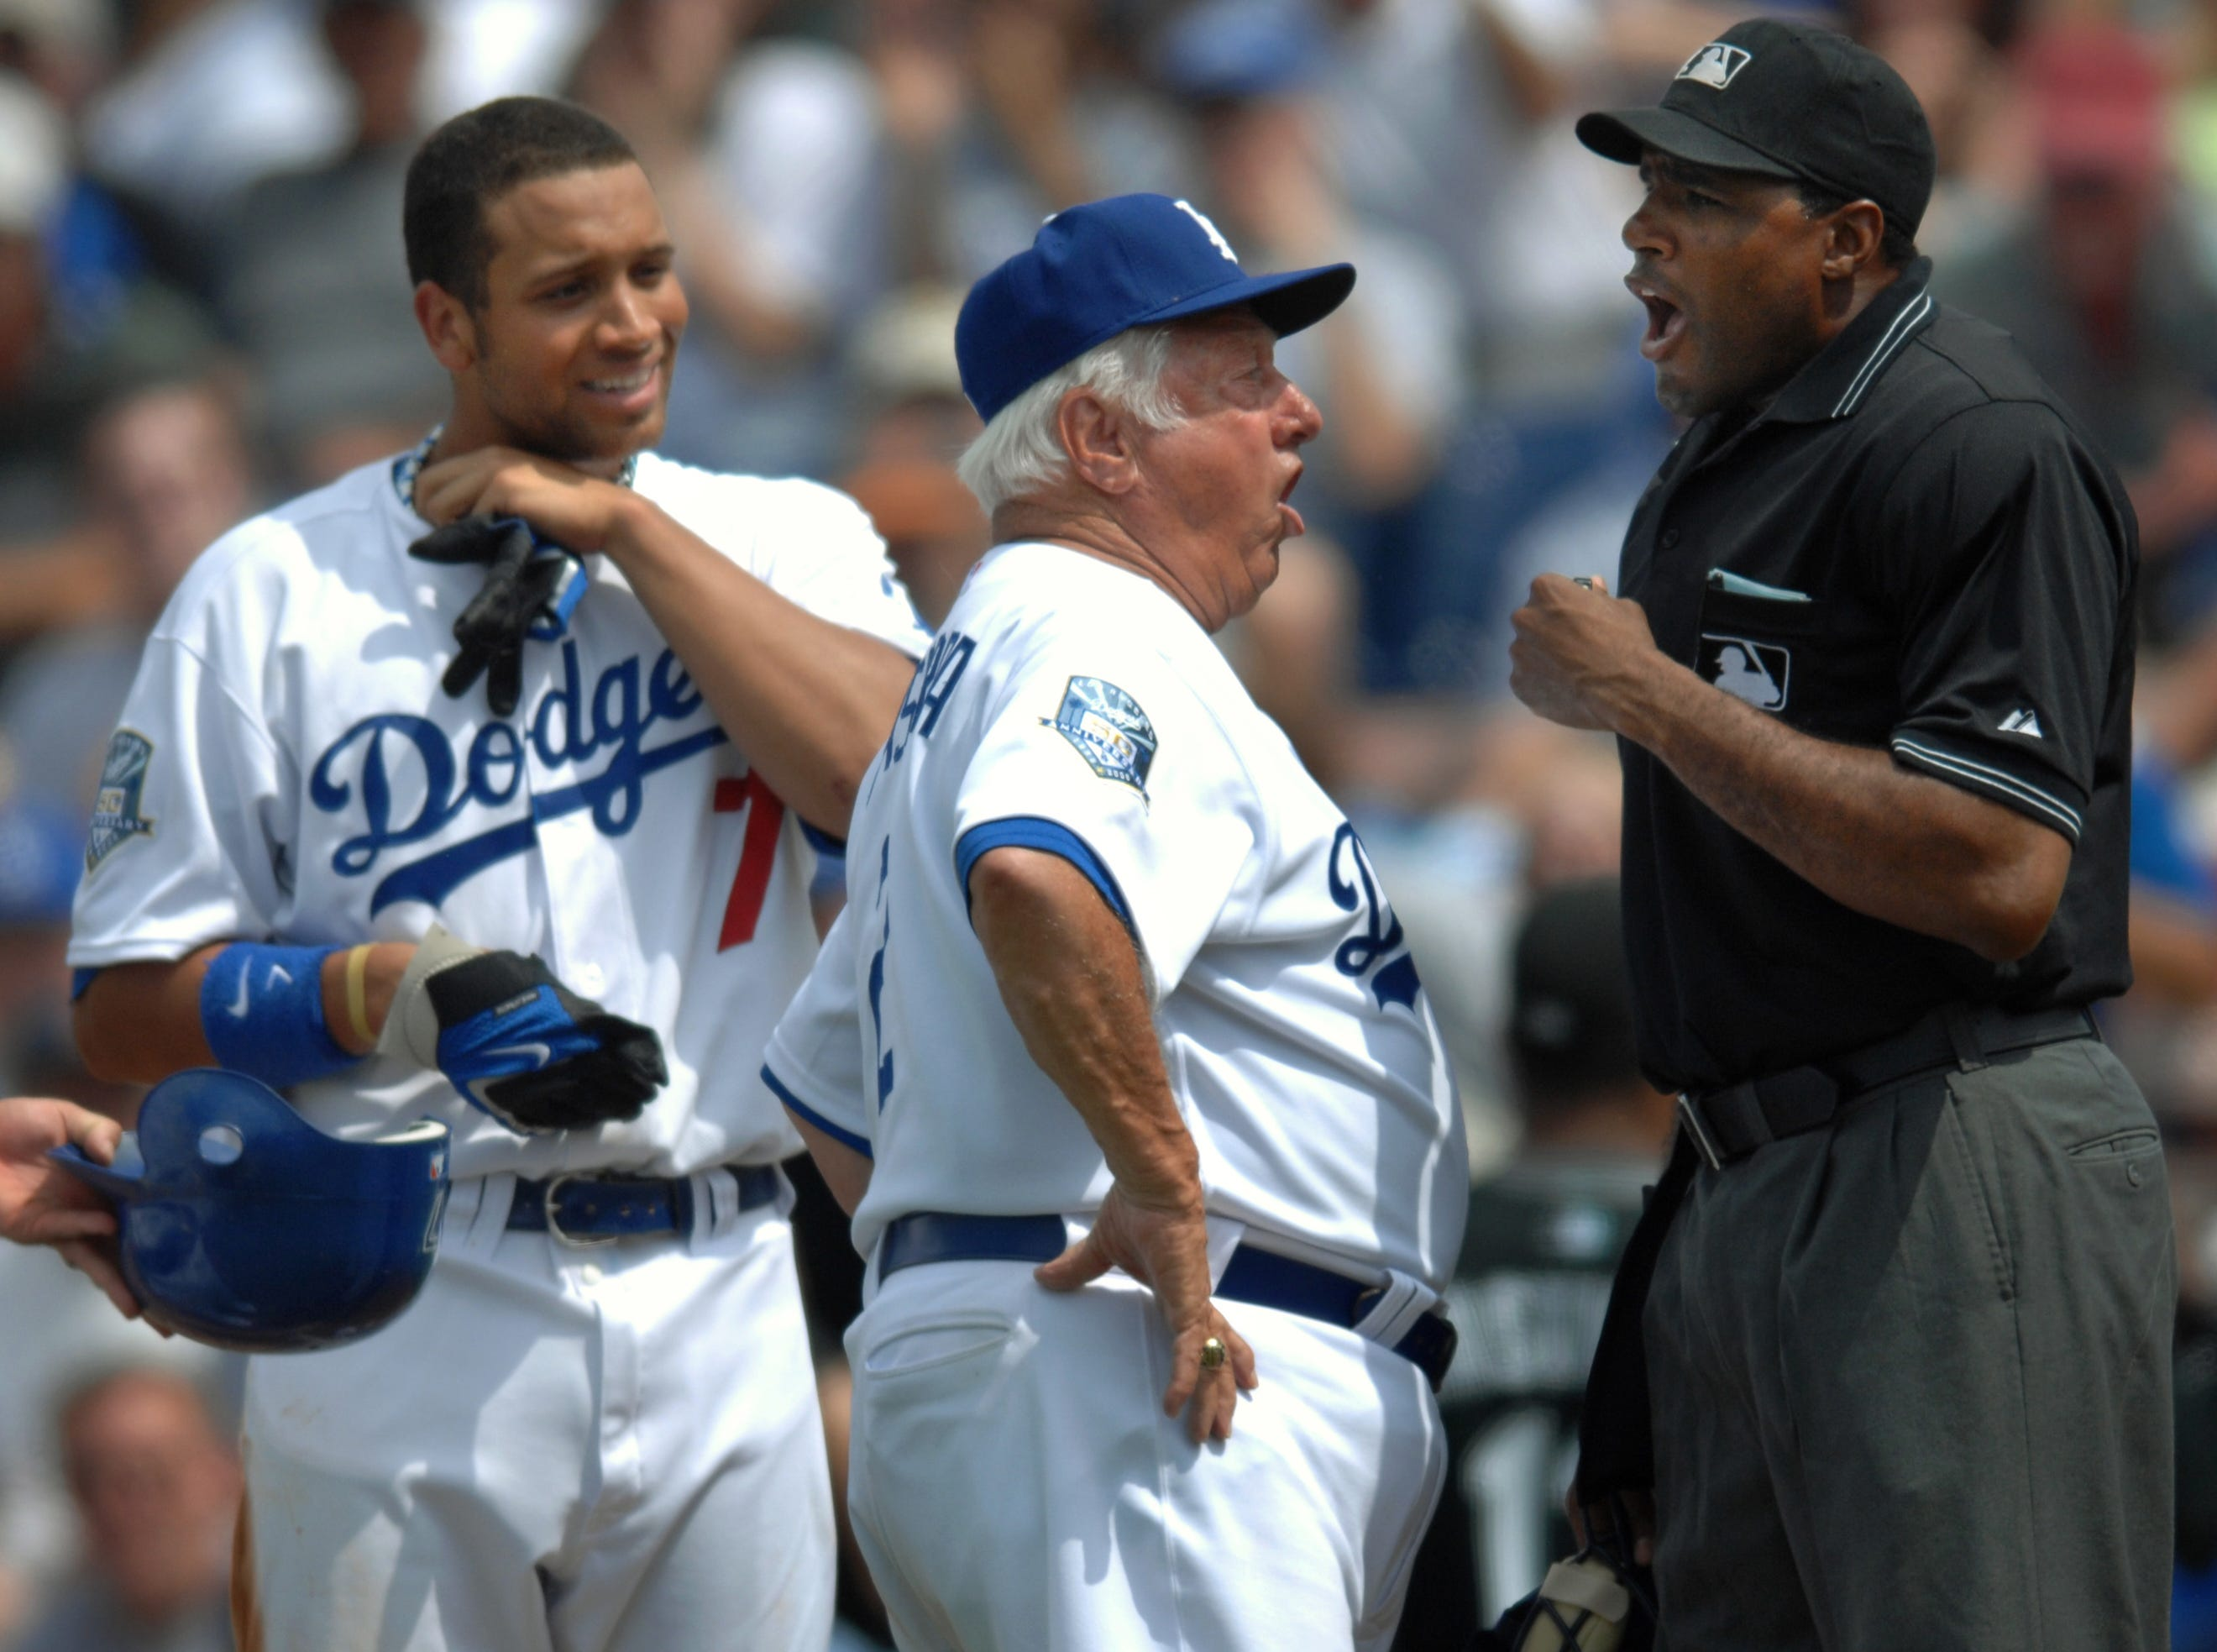 Former L.A. Dodgers manager Tommy Lasorda, second from right, argues a call with umpire Damien Beal March 11, 2008, after Beal called James Loney out (left) after being tagged on his way to first base. Lasorda believed the ball had rolled foul before being picked up by Florida Marlins Pitcher Andrew Miller. The Marlins defeated the Dodgers, 7-6.